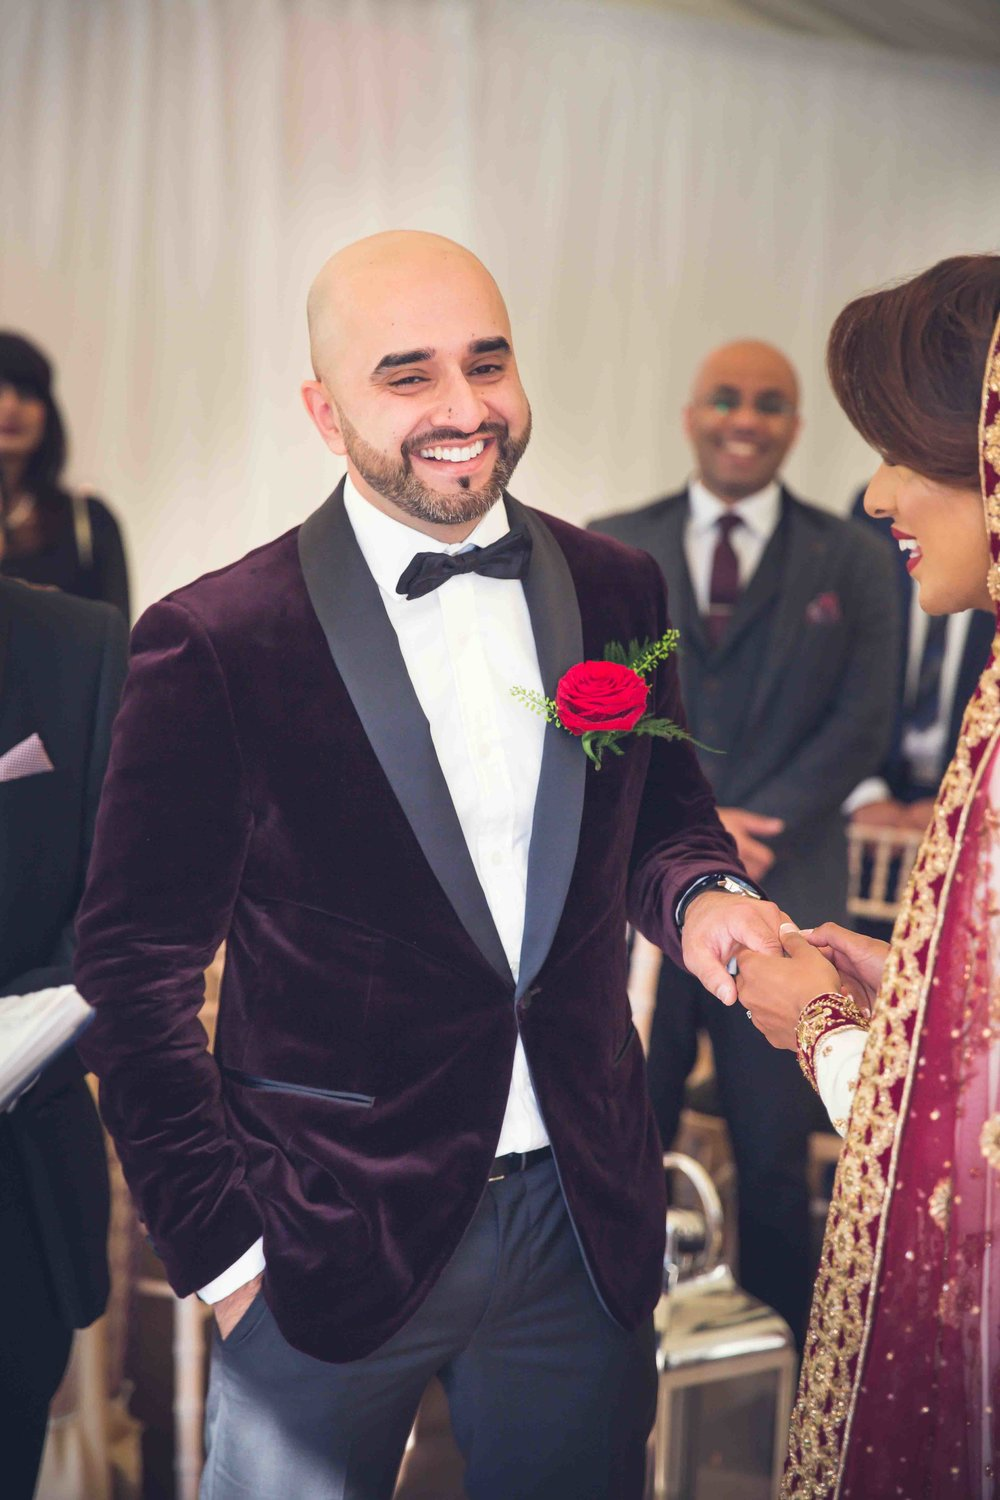 Asian Wedding Photographer Opu Sultan Photography Lyme Park Scotland Edinburgh Glasgow London Manchester Liverpool Birmingham Wedding Photos prewed shoot Azman & Saira Blog-76.jpg